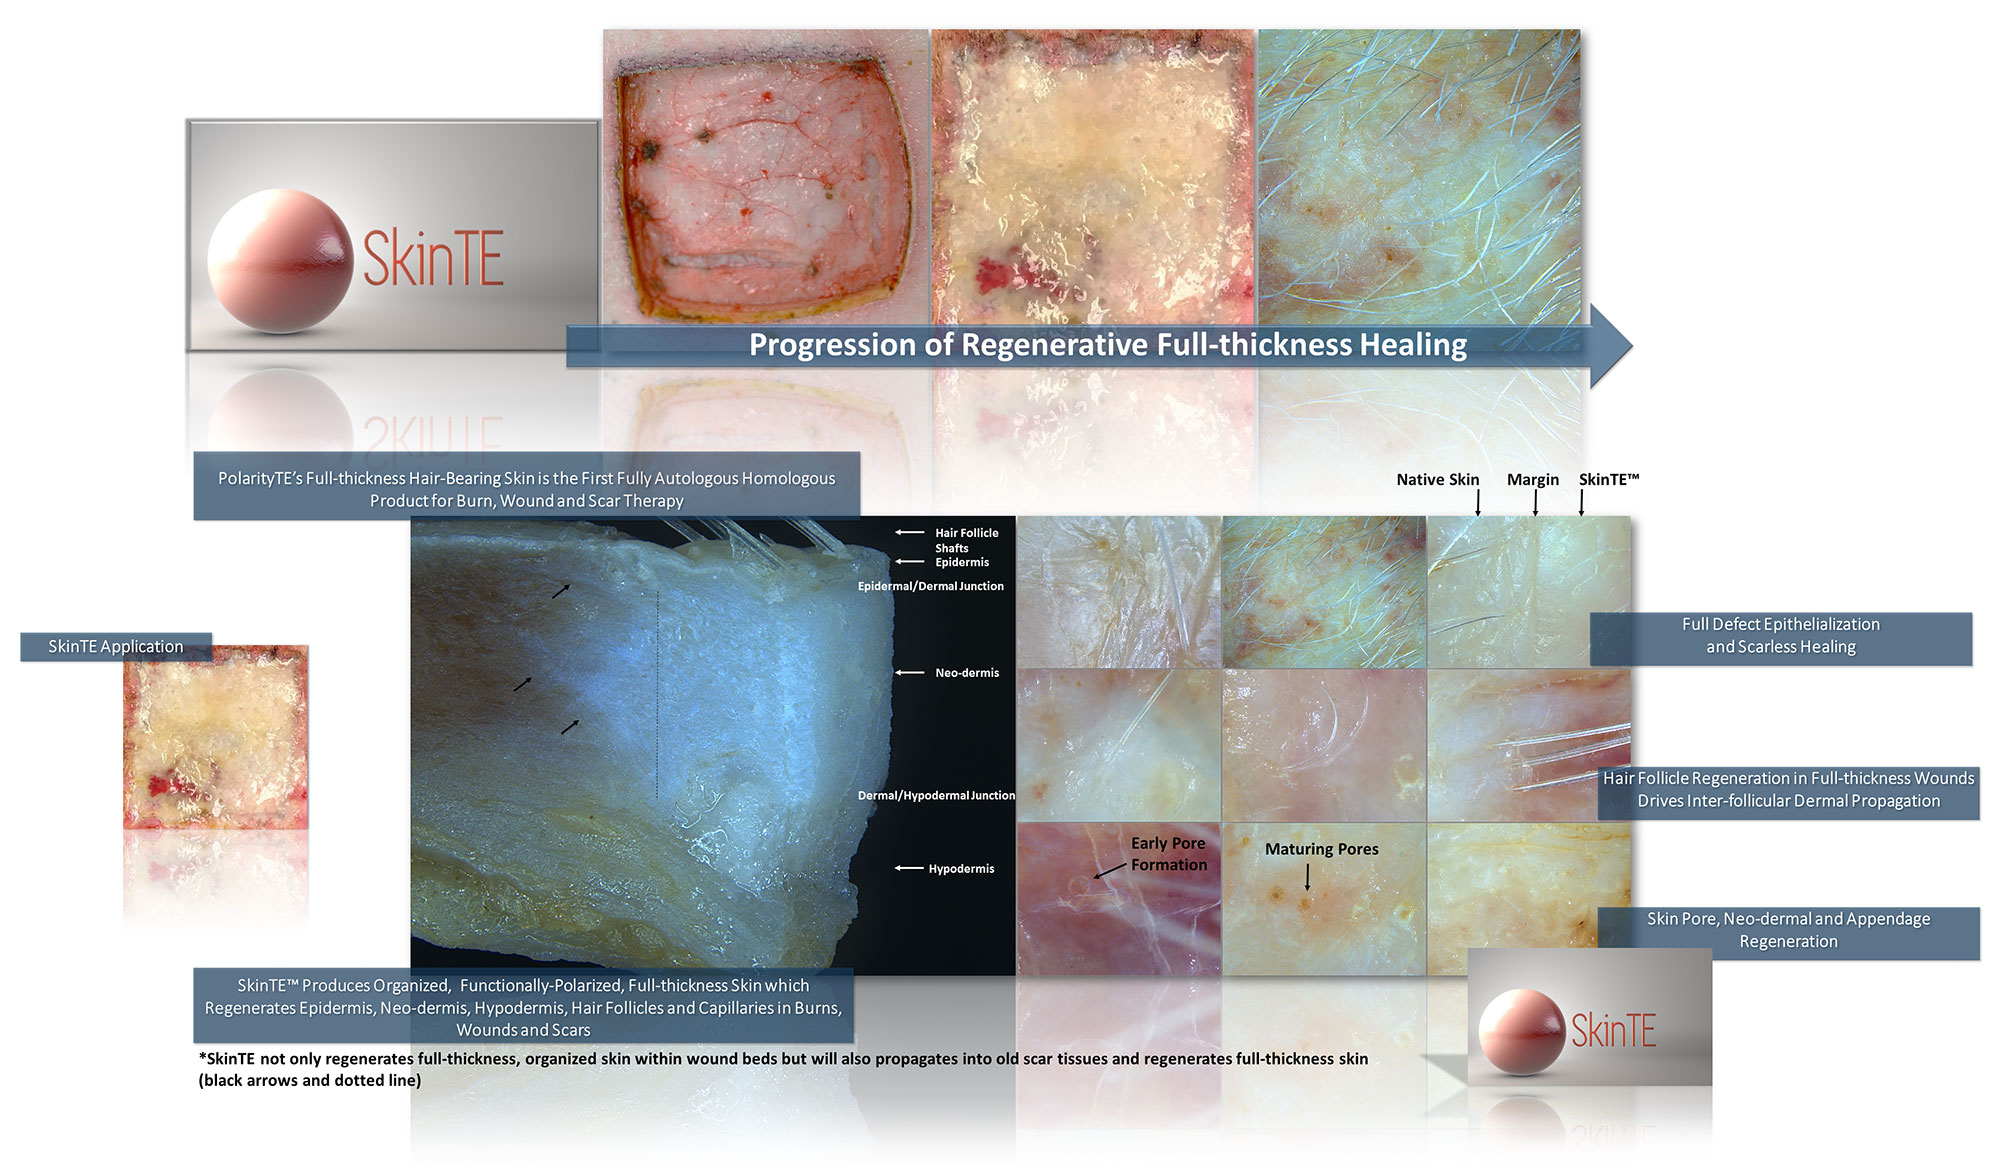 SkinTE Results in Scarless Healing with Hair Growth